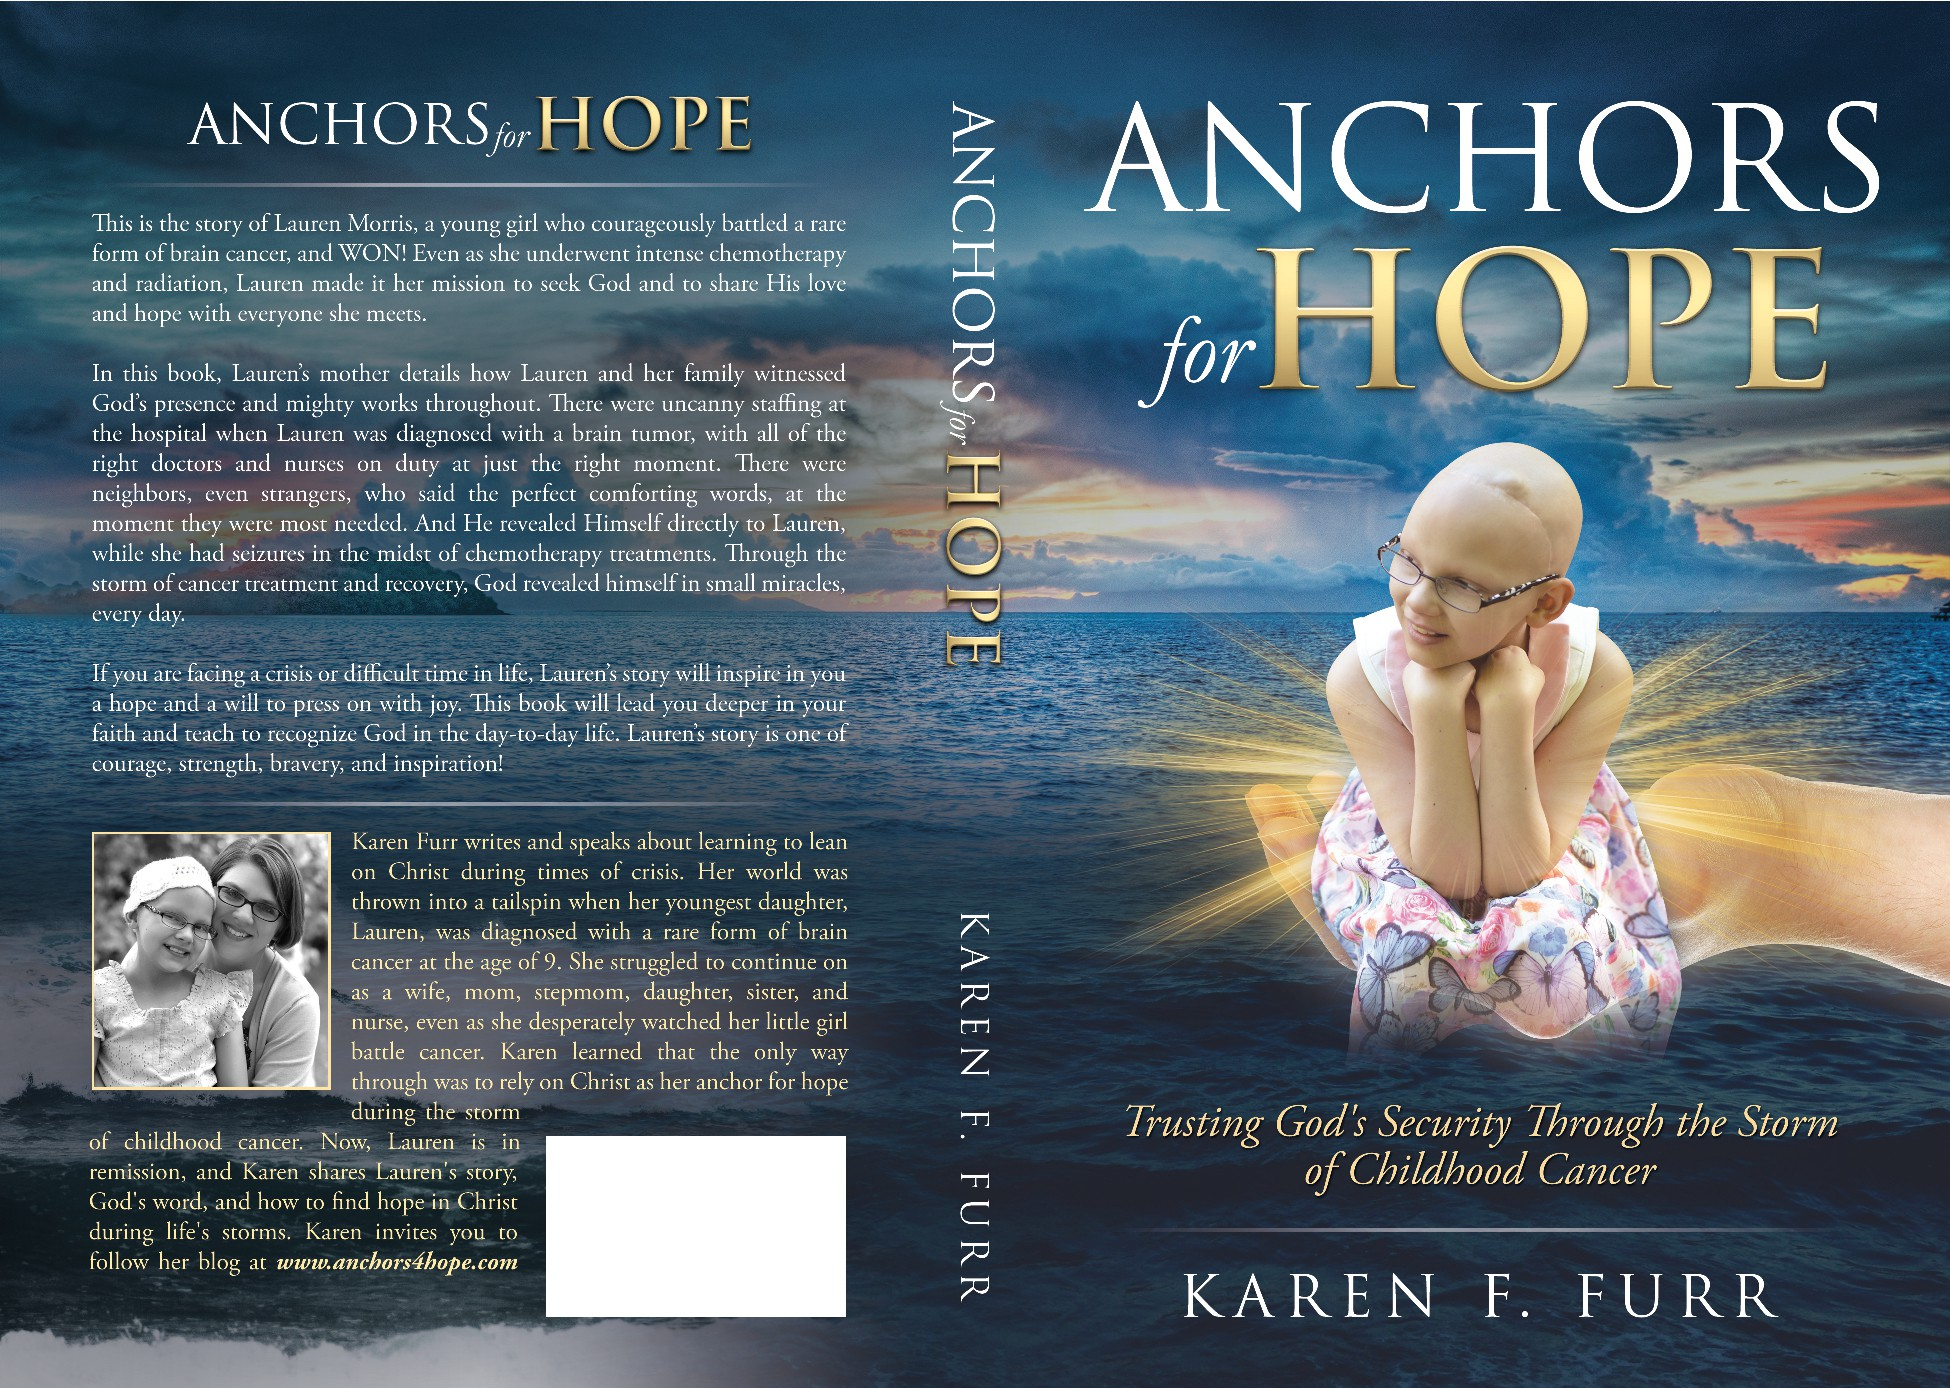 Create a cover design for a book about a young girl's courageous journey through childhood cancer